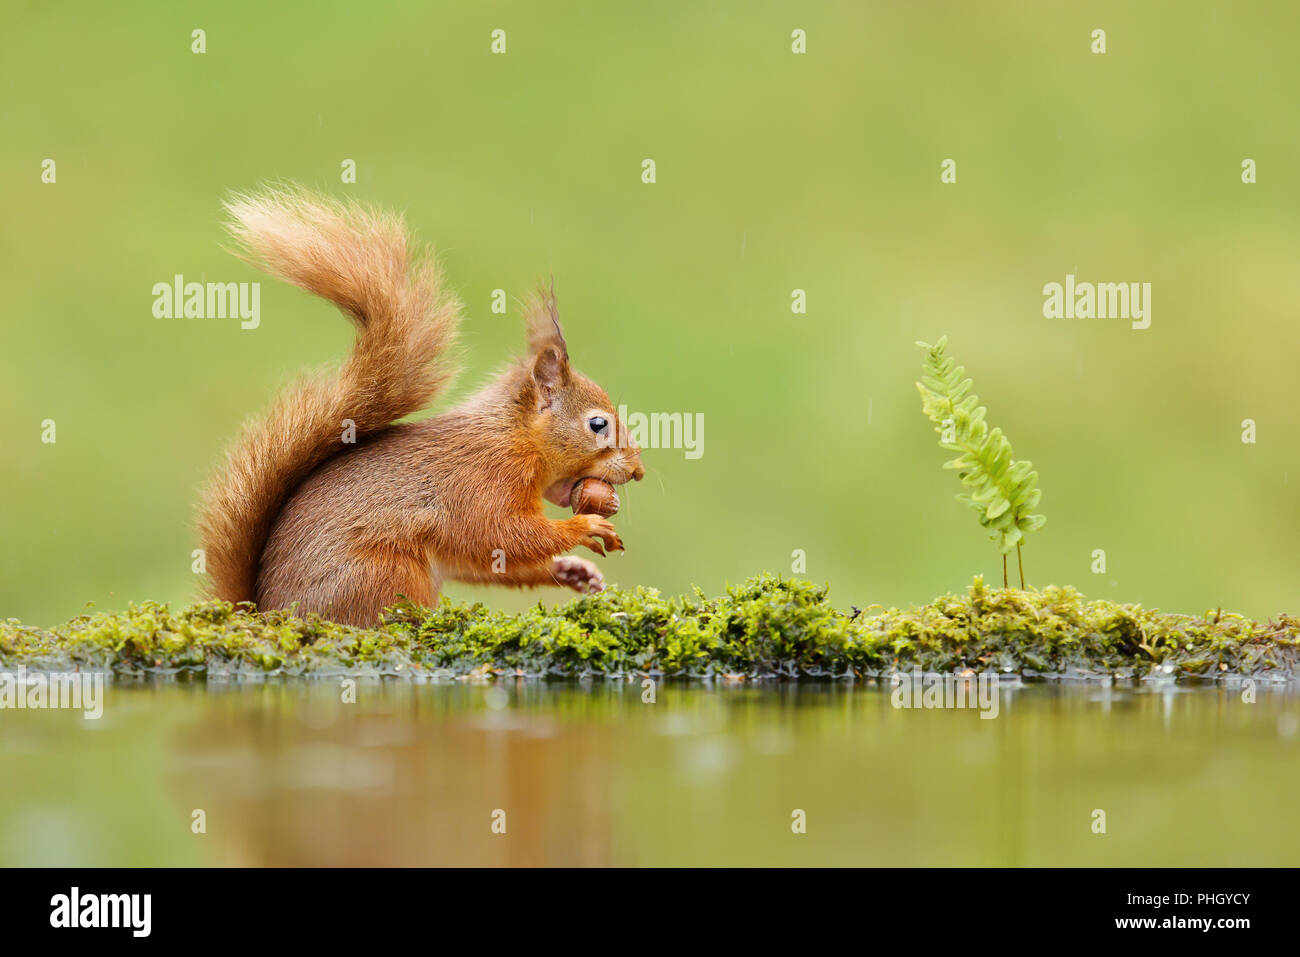 Close up of a red squirrel (Sciurus vulgaris) eating a nut on rainy day near water, UK - Stock Image